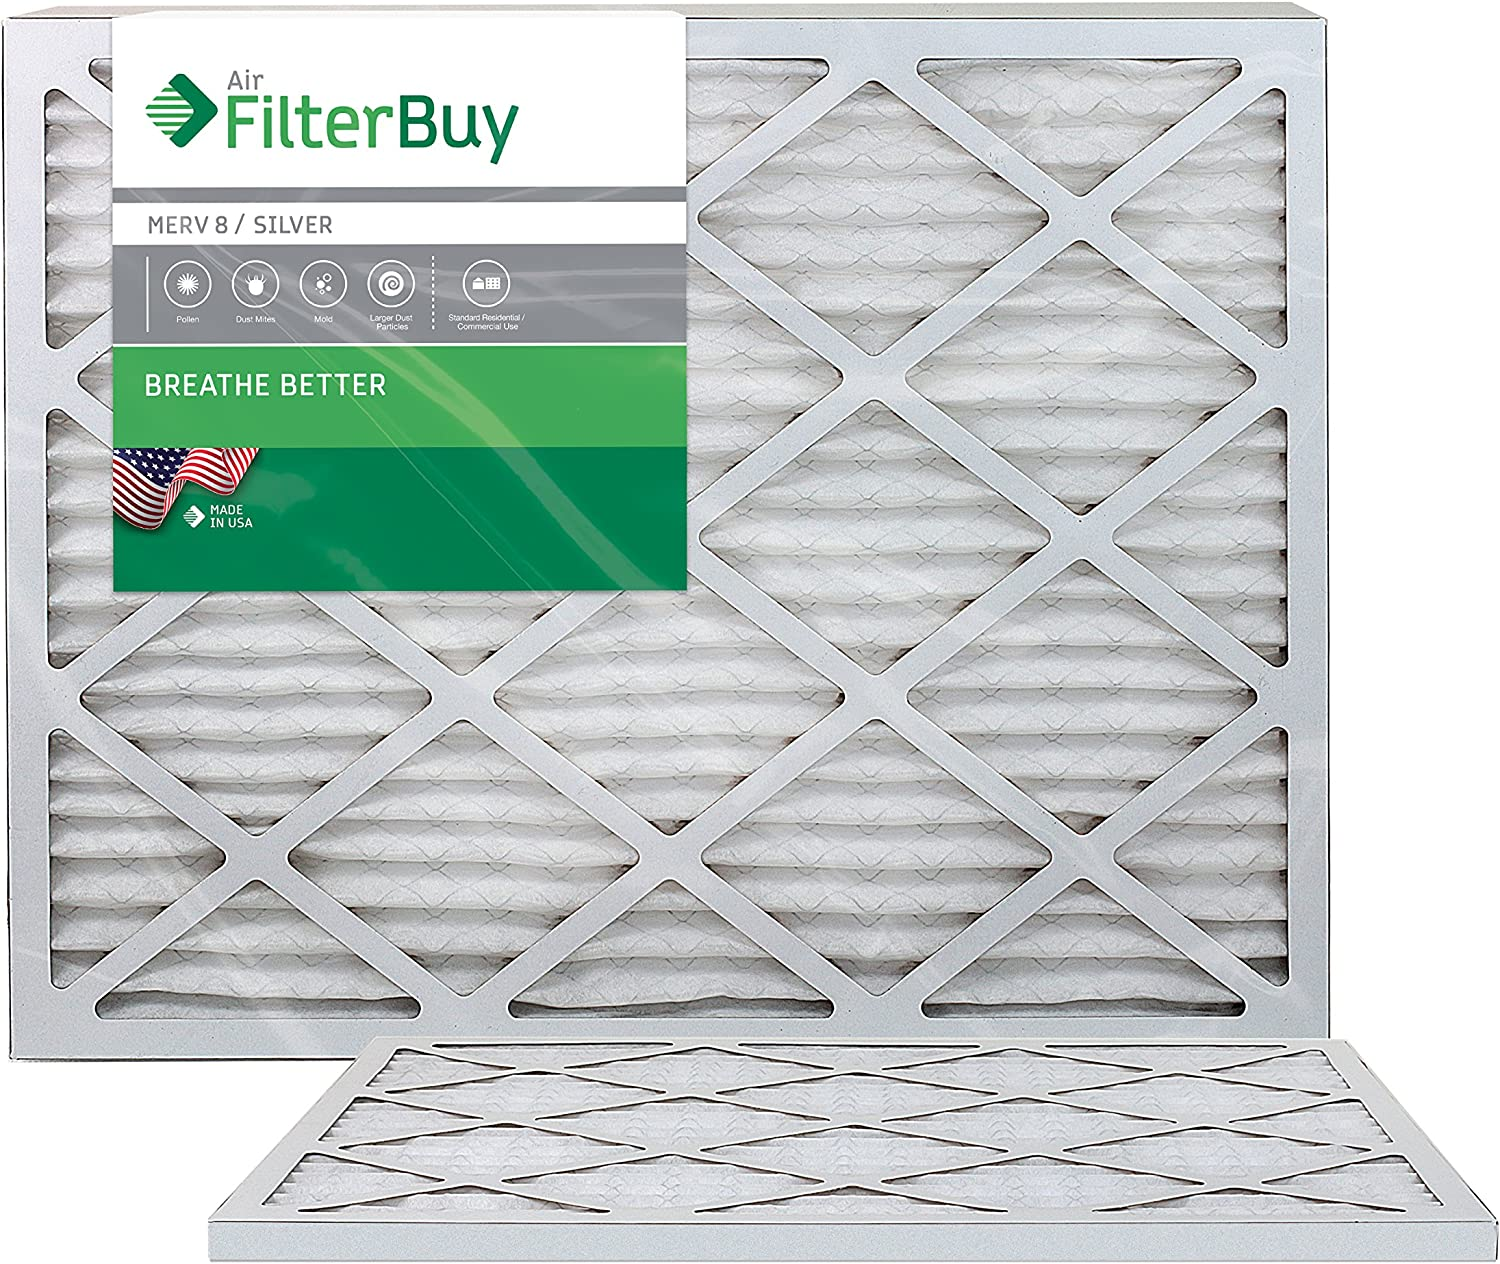 FilterBuy 24x36x1 MERV 8 Pleated AC Furnace Air Filter, (Pack of 2 Filters), 24x36x1 – Silver